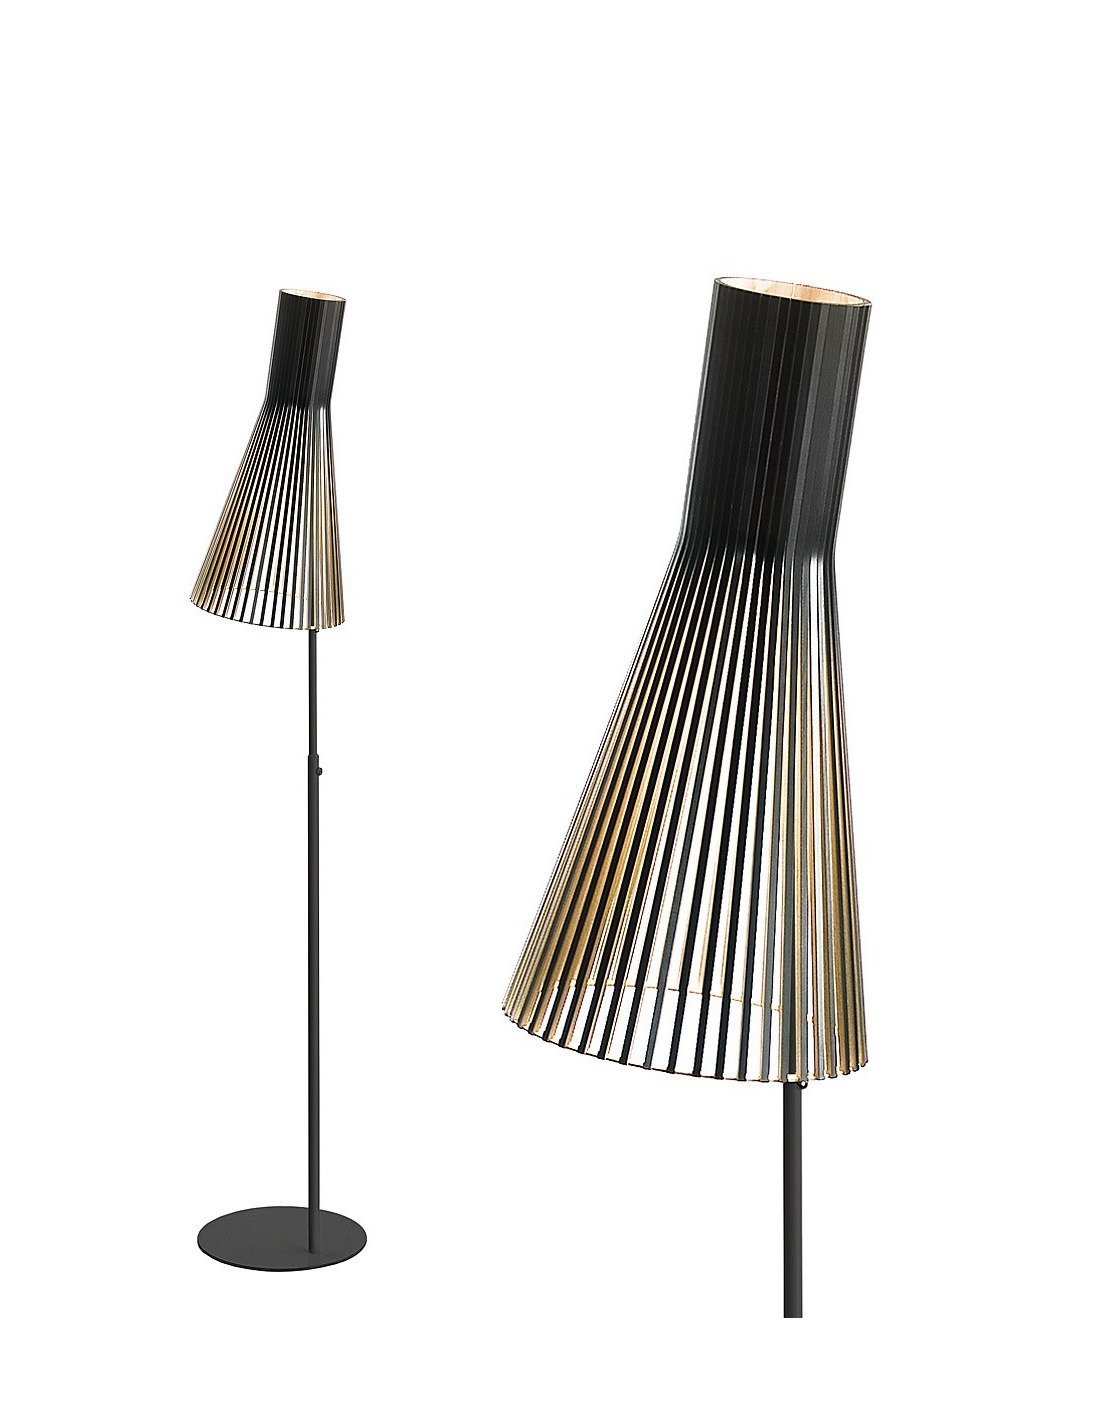 lampadaire au design scandinave 4210 en bois naturel otoko. Black Bedroom Furniture Sets. Home Design Ideas